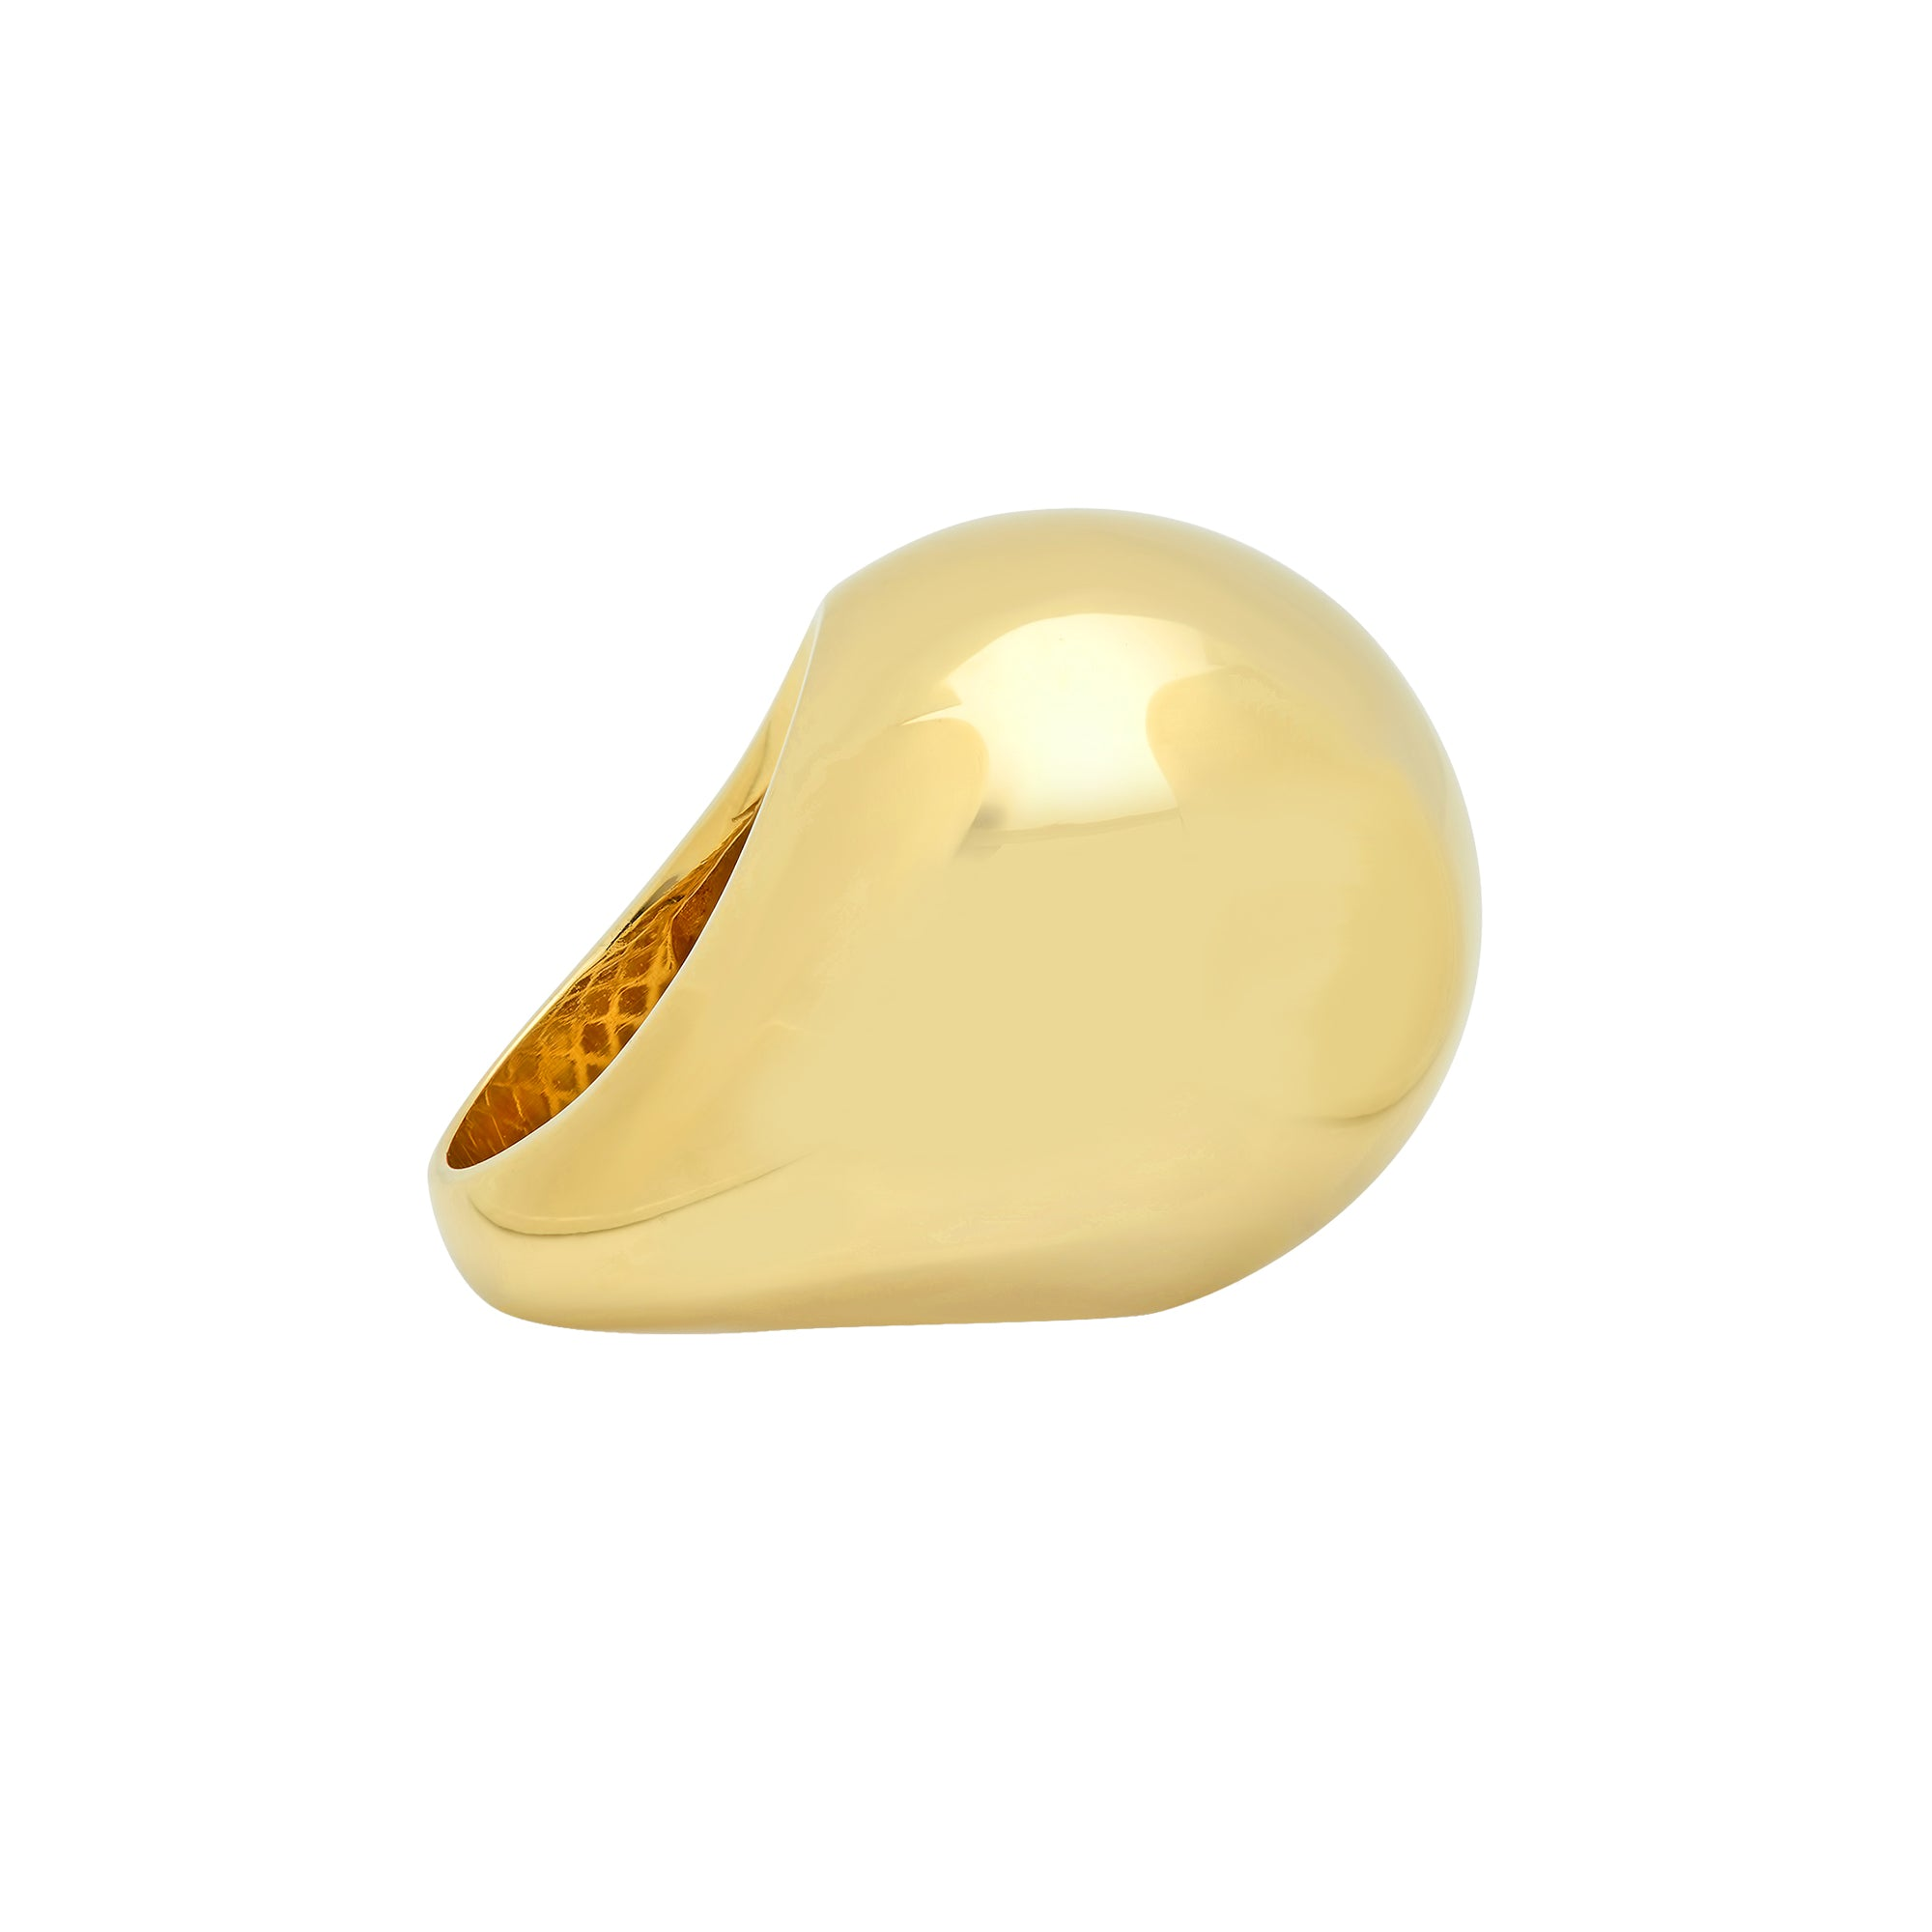 Gold Bauble Ring by Established for Broken English Jewelry